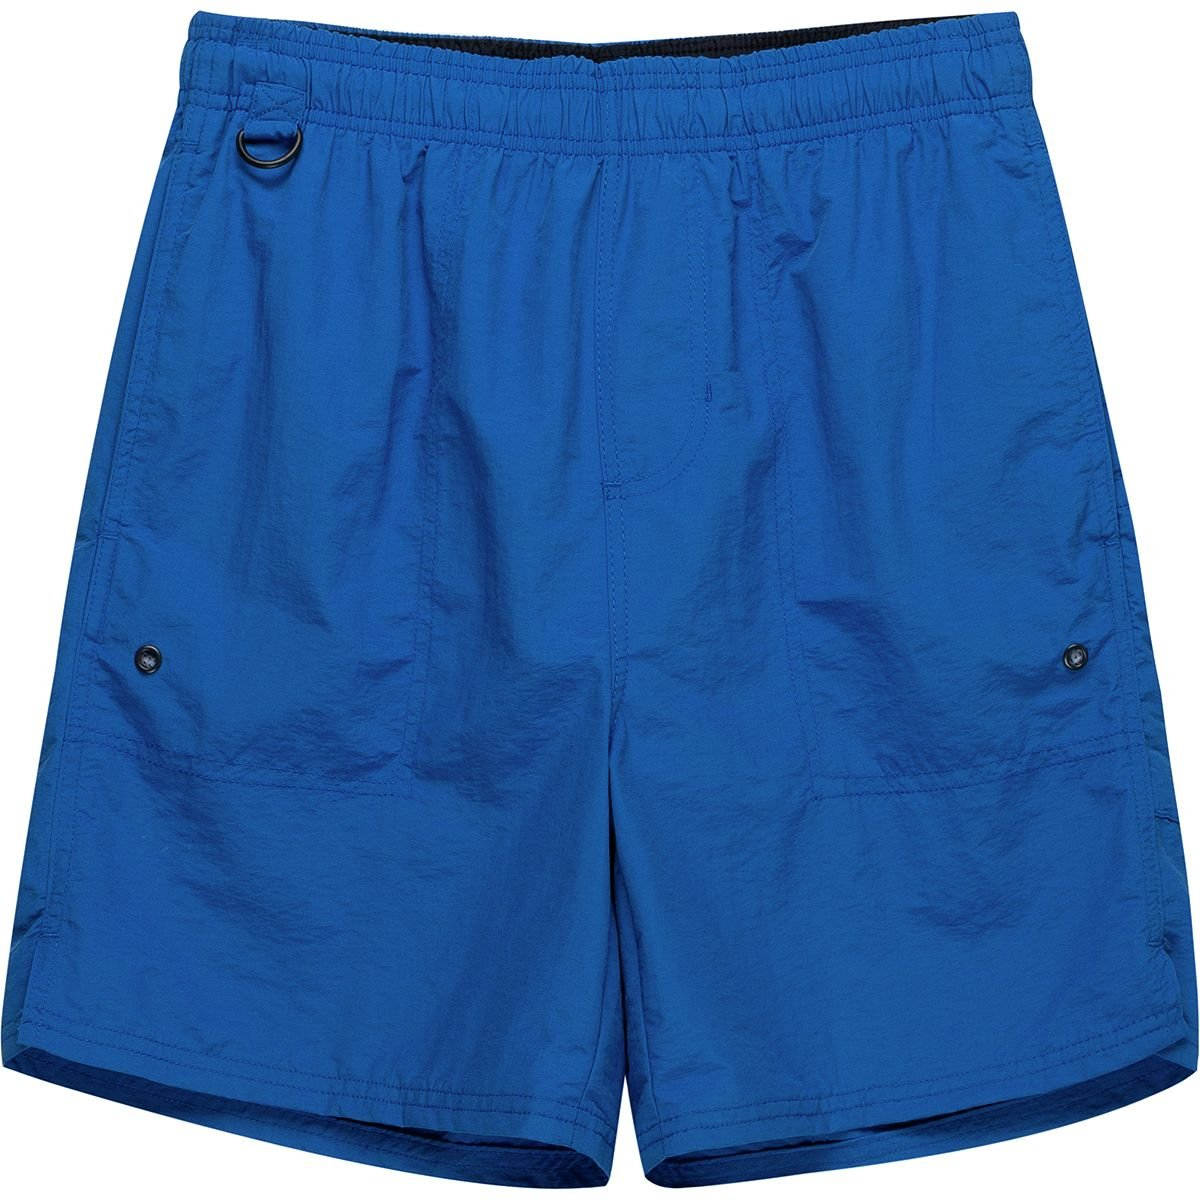 Burnside Men's Explorer Hybrid Swim Short BN9491